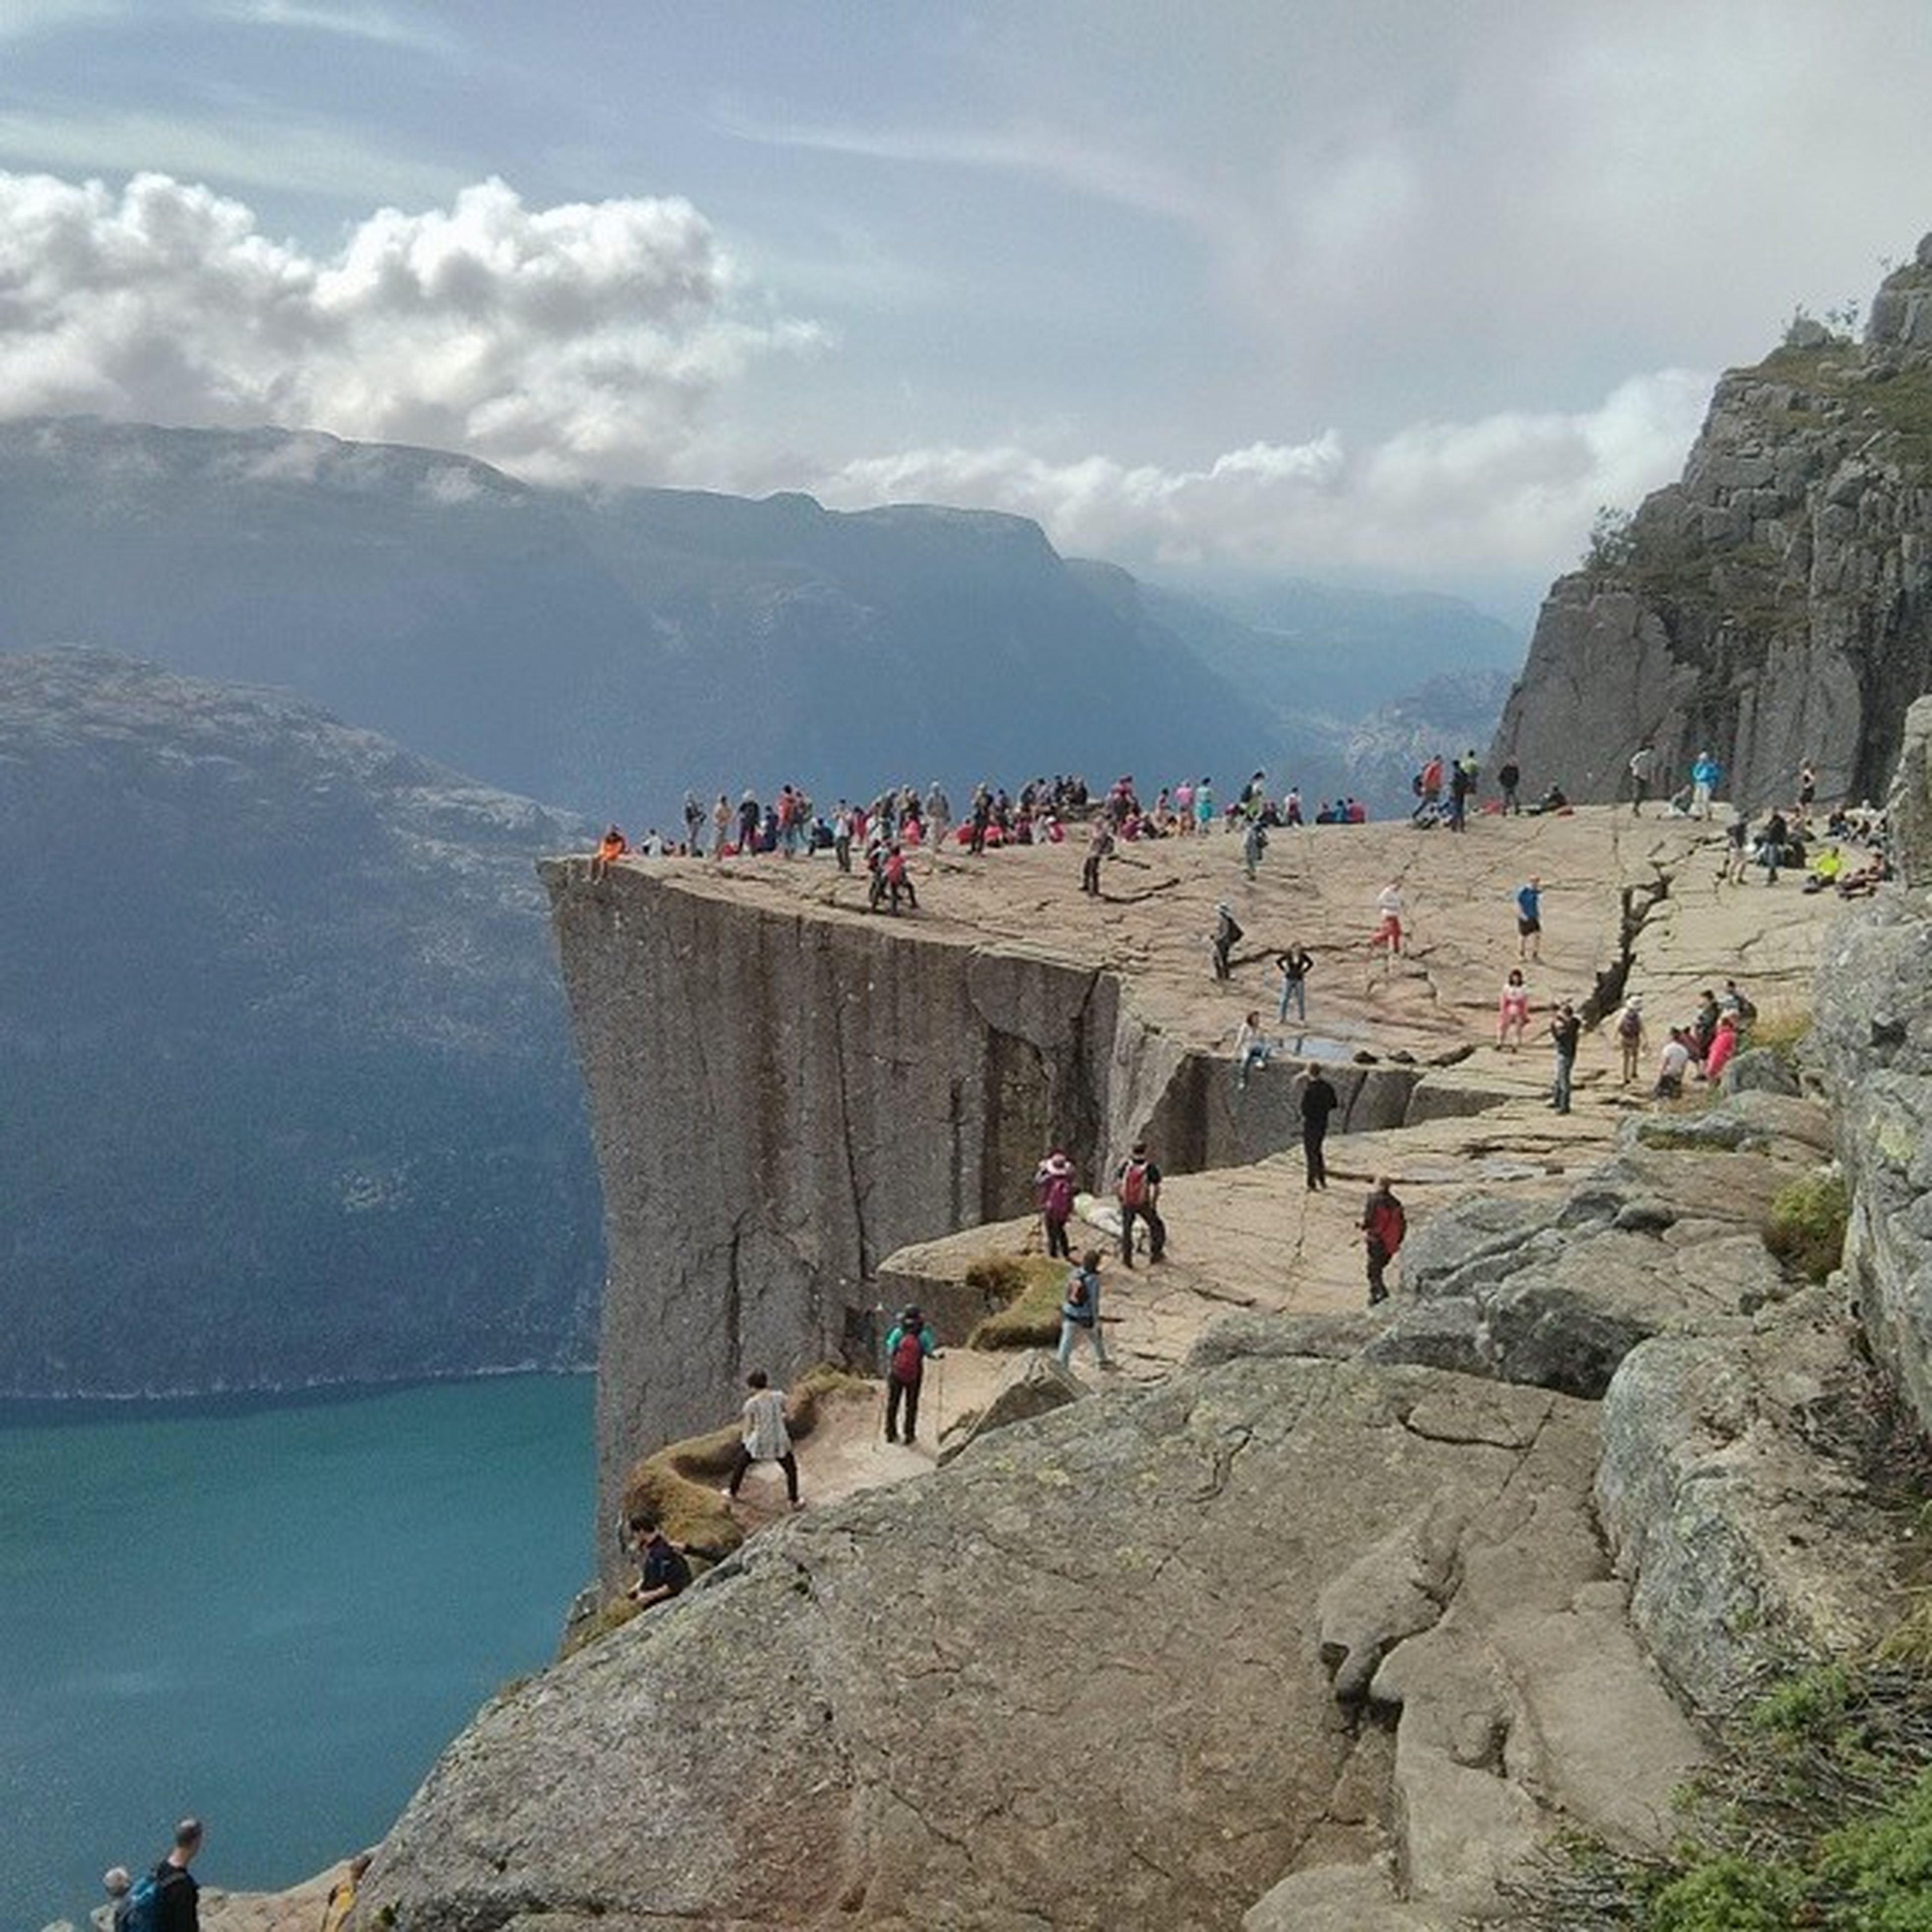 large group of people, sky, water, mountain, men, person, tourist, lifestyles, sea, leisure activity, rock - object, vacations, beach, cloud - sky, tourism, mixed age range, built structure, medium group of people, nature